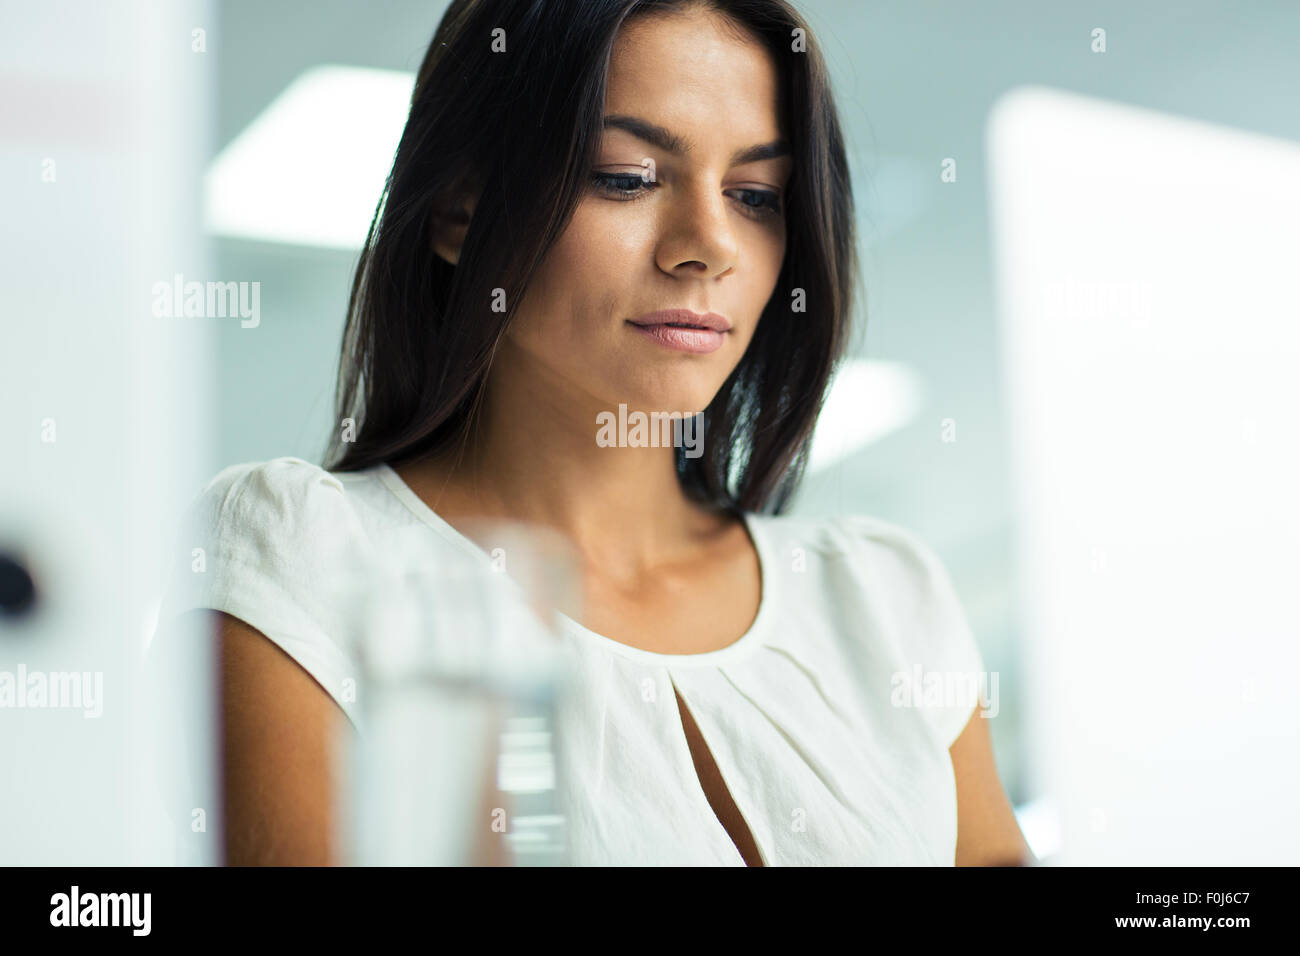 Portrait of a beautiful businesswoman working in office - Stock Image